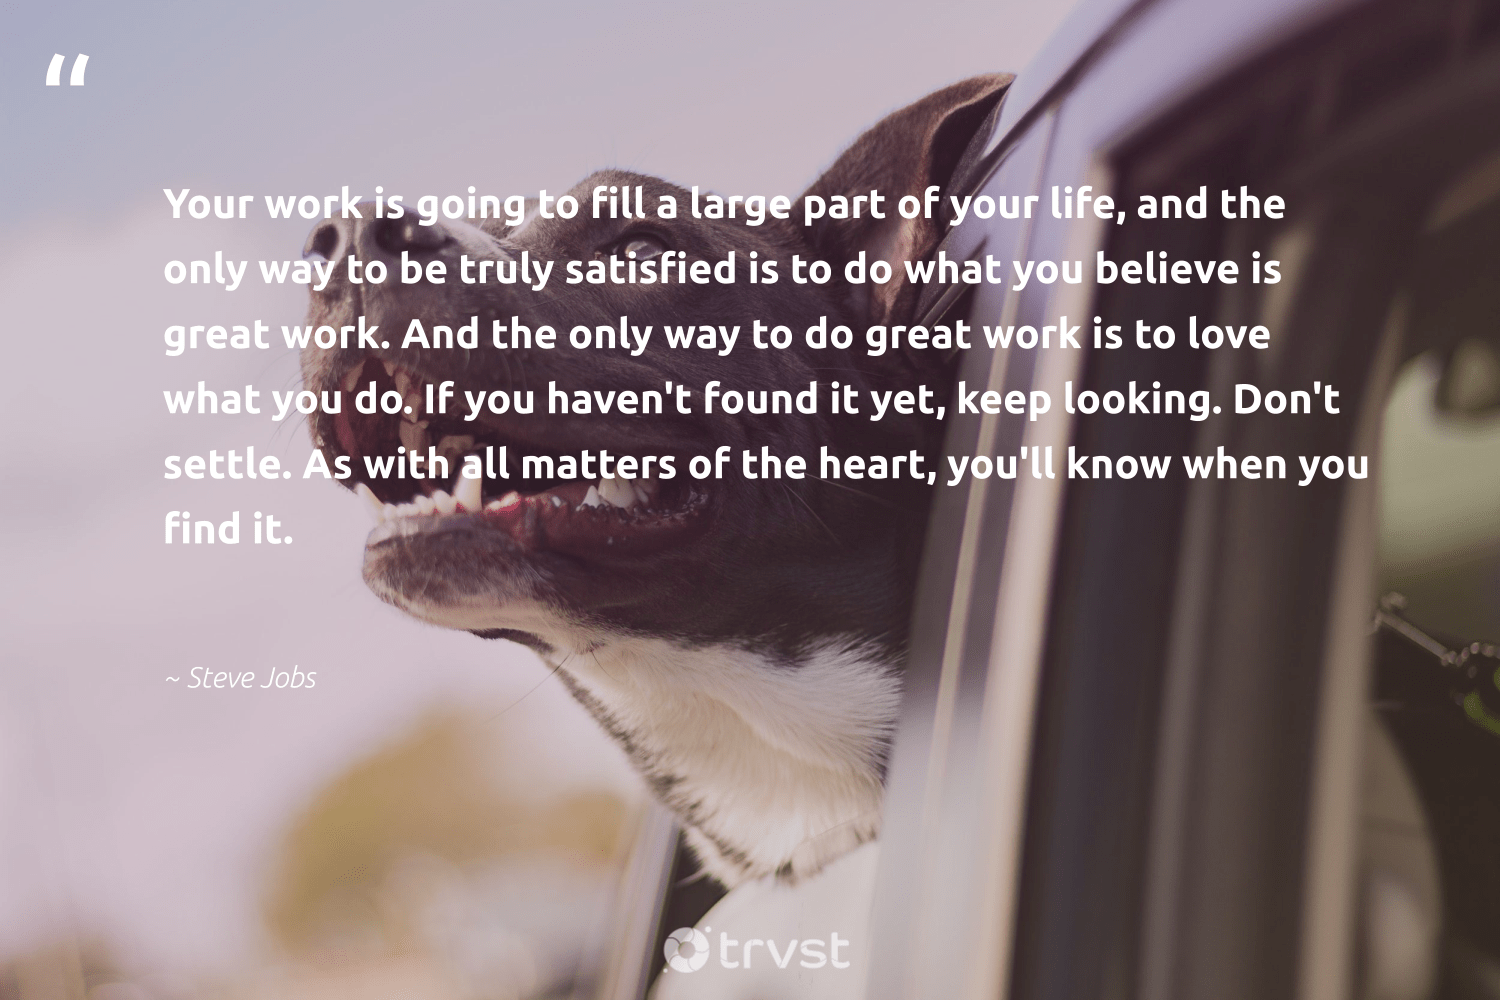 """Your work is going to fill a large part of your life, and the only way to be truly satisfied is to do what you believe is great work. And the only way to do great work is to love what you do. If you haven't found it yet, keep looking. Don't settle. As with all matters of the heart, you'll know when you find it.""  - Steve Jobs #trvst #quotes #love #begreat #gogreen #futureofwork #socialimpact #nevergiveup #ecoconscious #softskills #thinkgreen #dotherightthing"